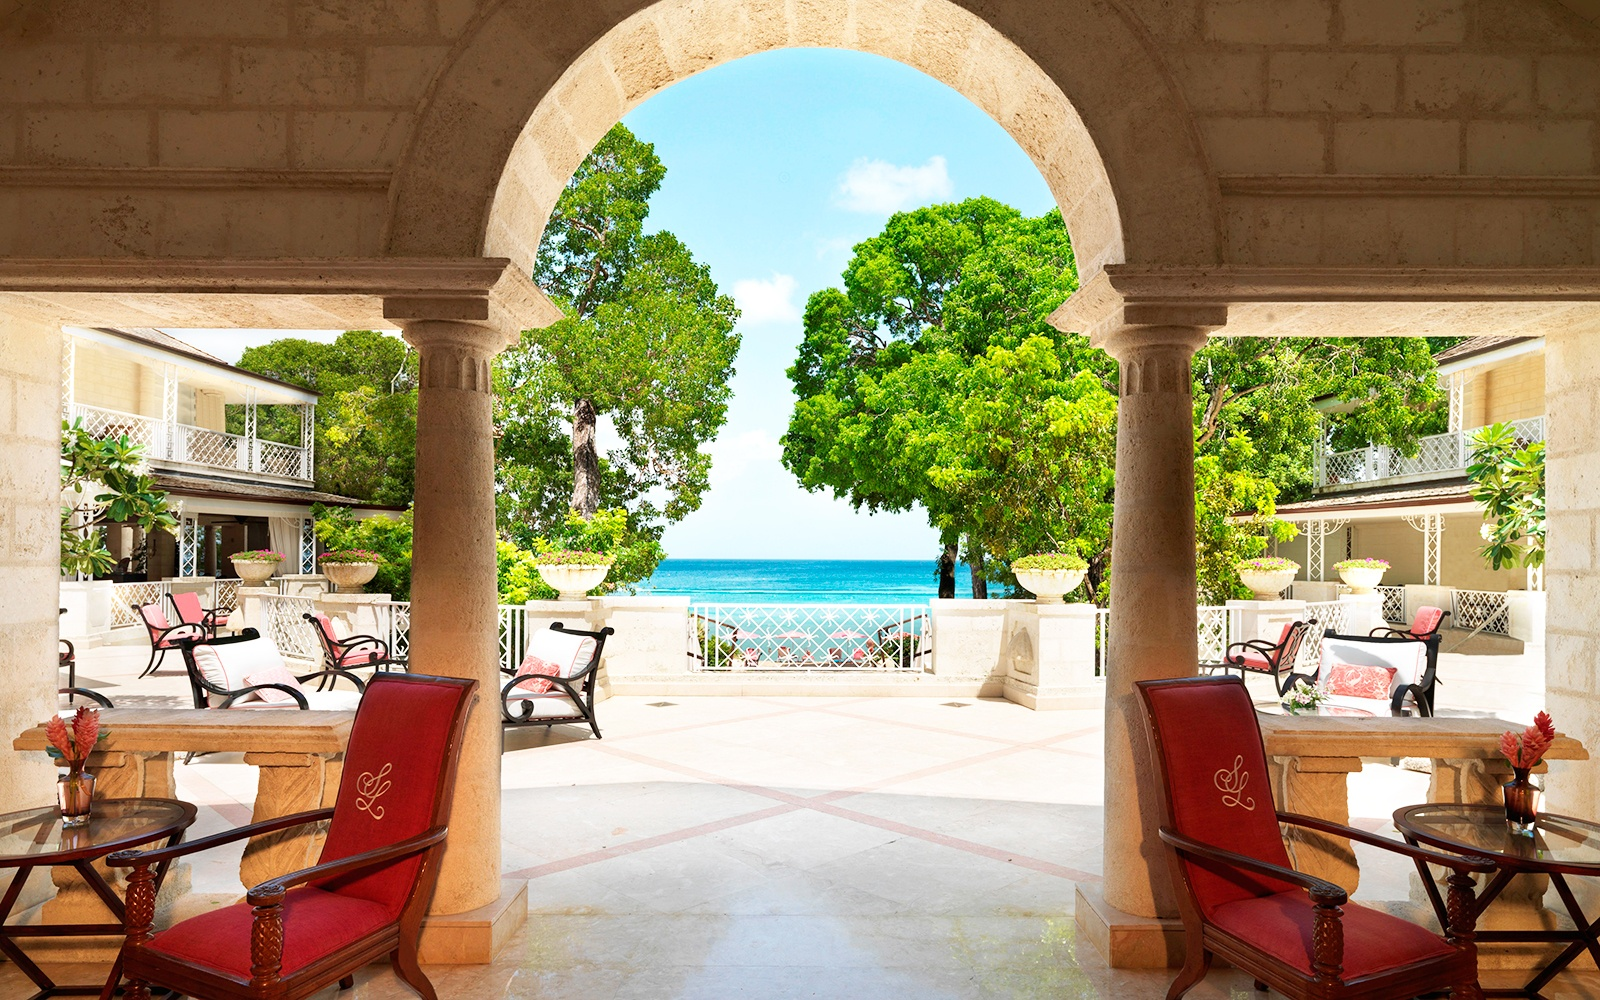 No. 9 Sandy Lane Hotel, Barbados